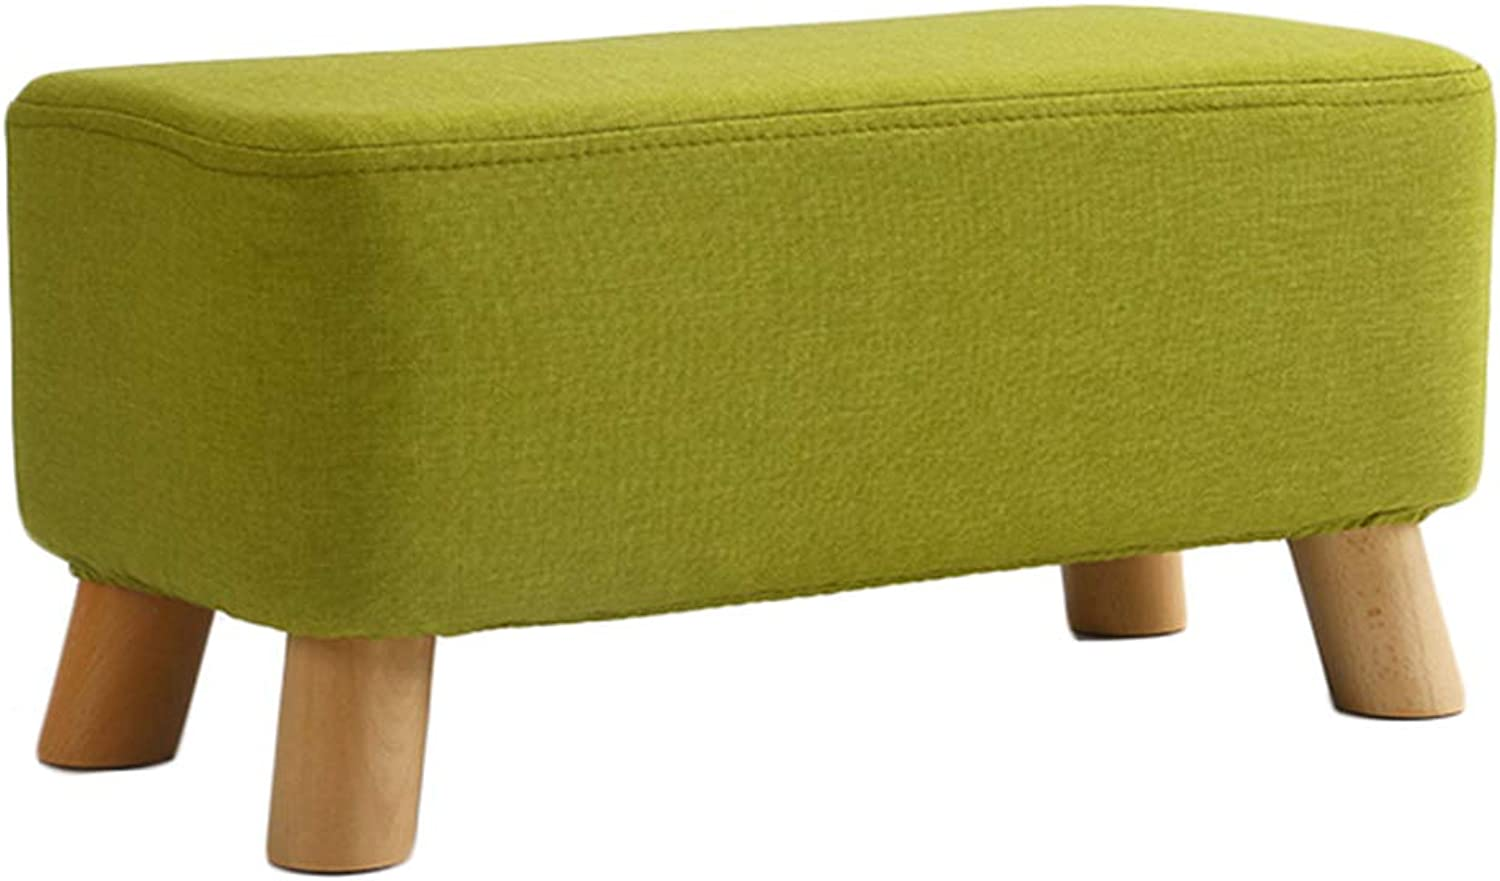 CAIJUN Footstool Multipurpose Solid Wood Frame Removable Seat Cover Non-Slip Whole Outfit, 4 colors, 2 Sizes (color   Green, Size   56x28x26cm)